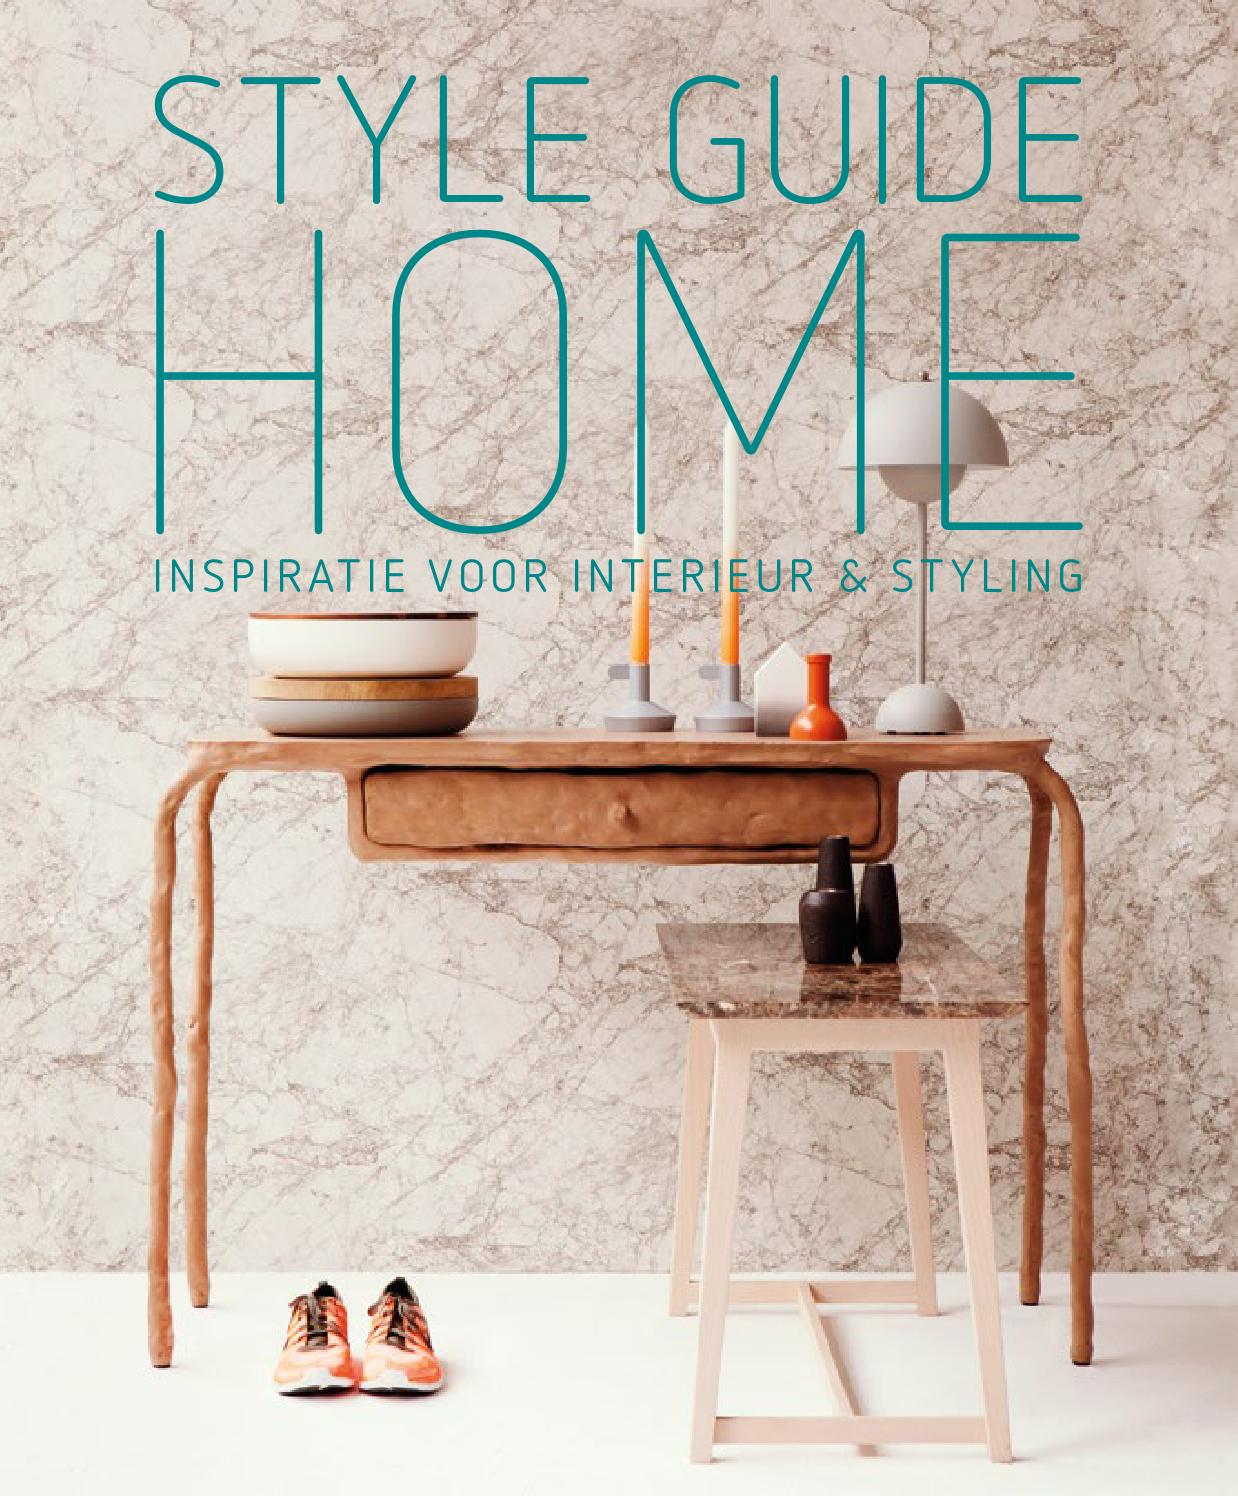 Style guide home 2014   2015 by perscentrum wonen   issuu